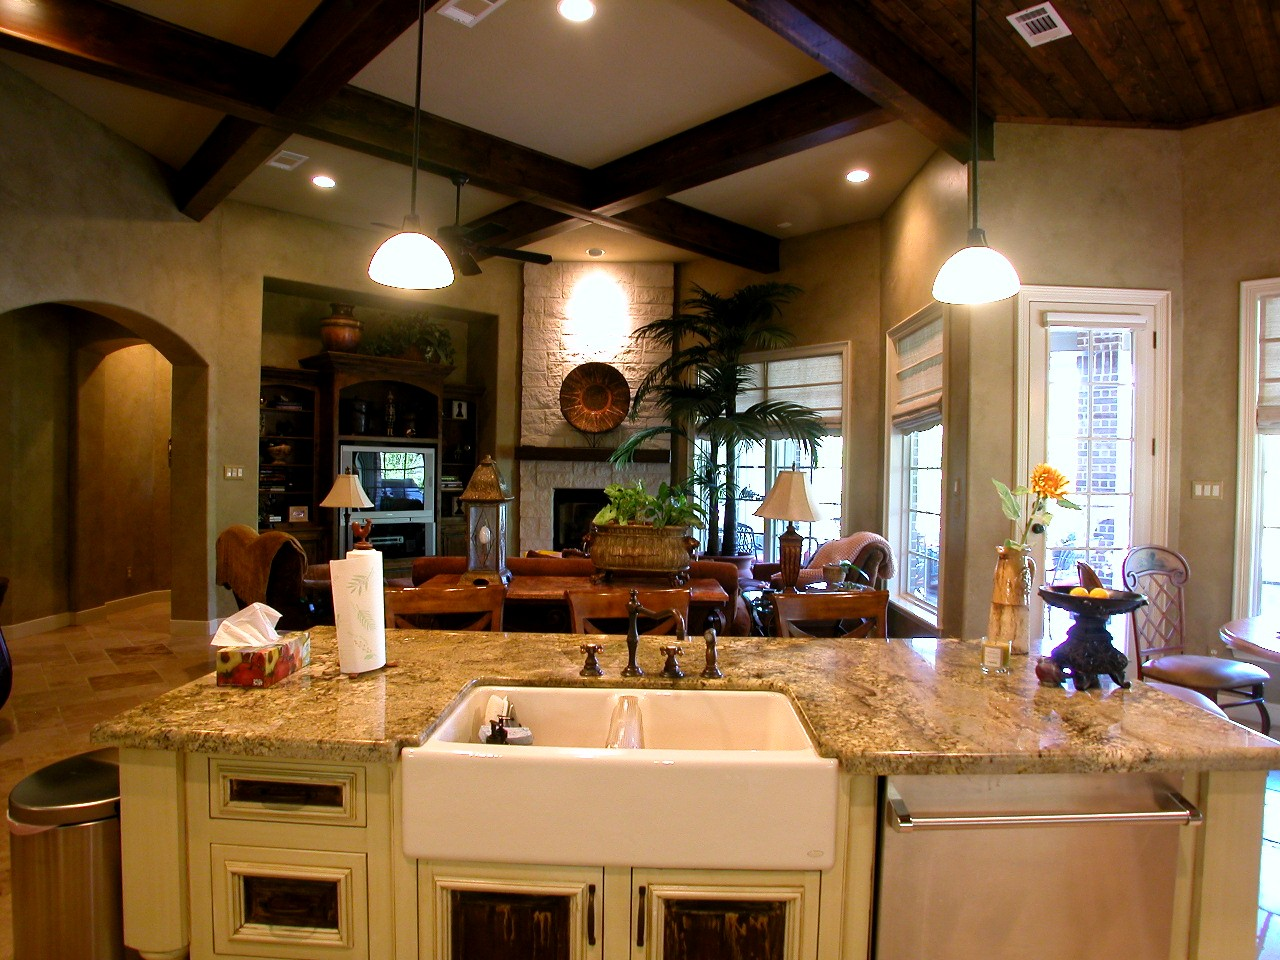 This is the page for Great room kitchen ideas